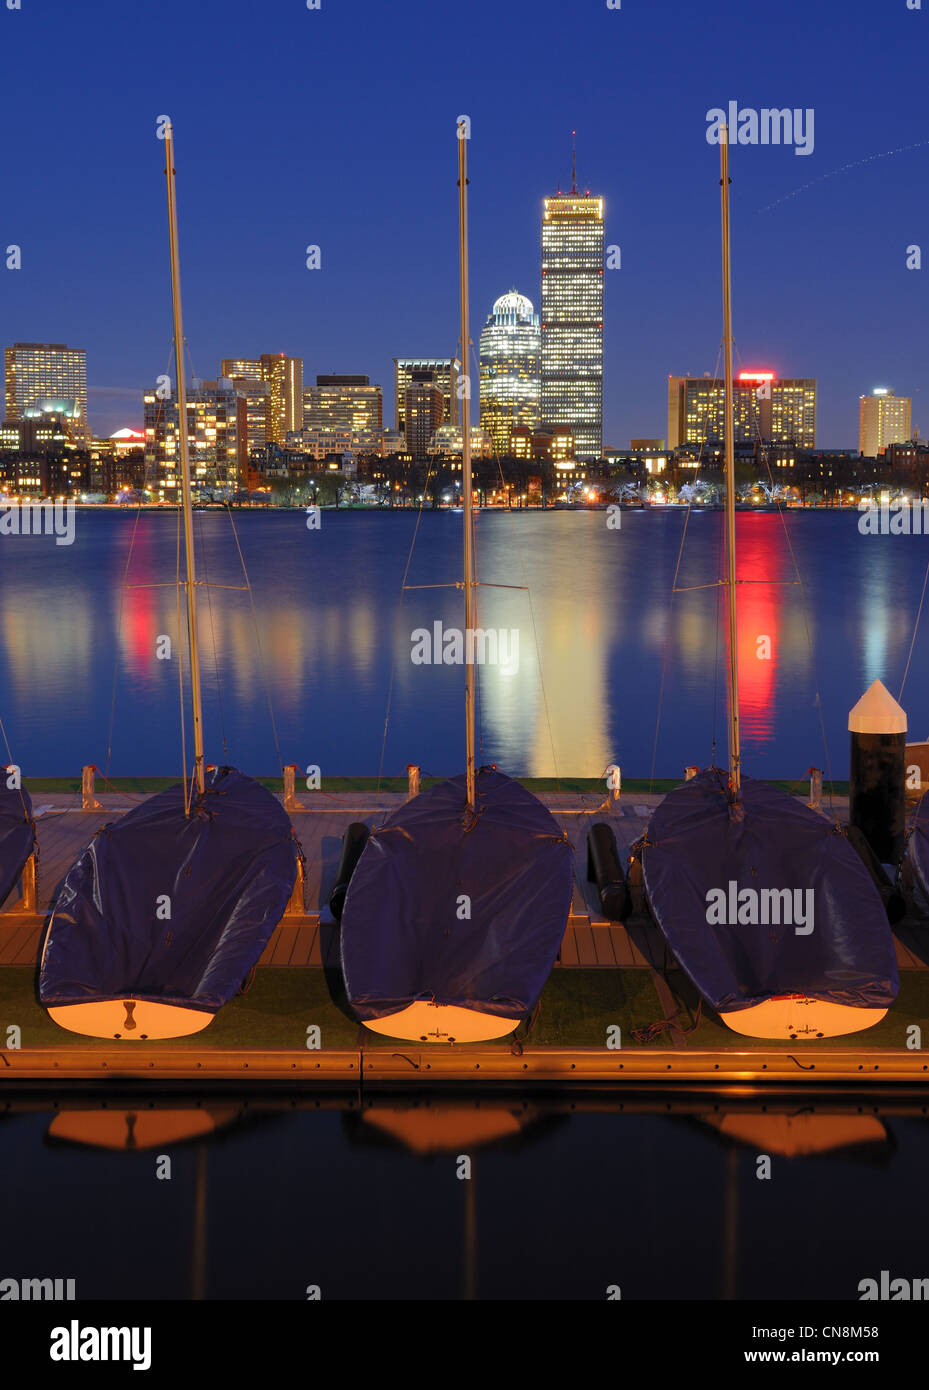 Docked boats against the cityscape of Back Bay Boston, Massachusetts, USA from across the Charles River. Stock Photo